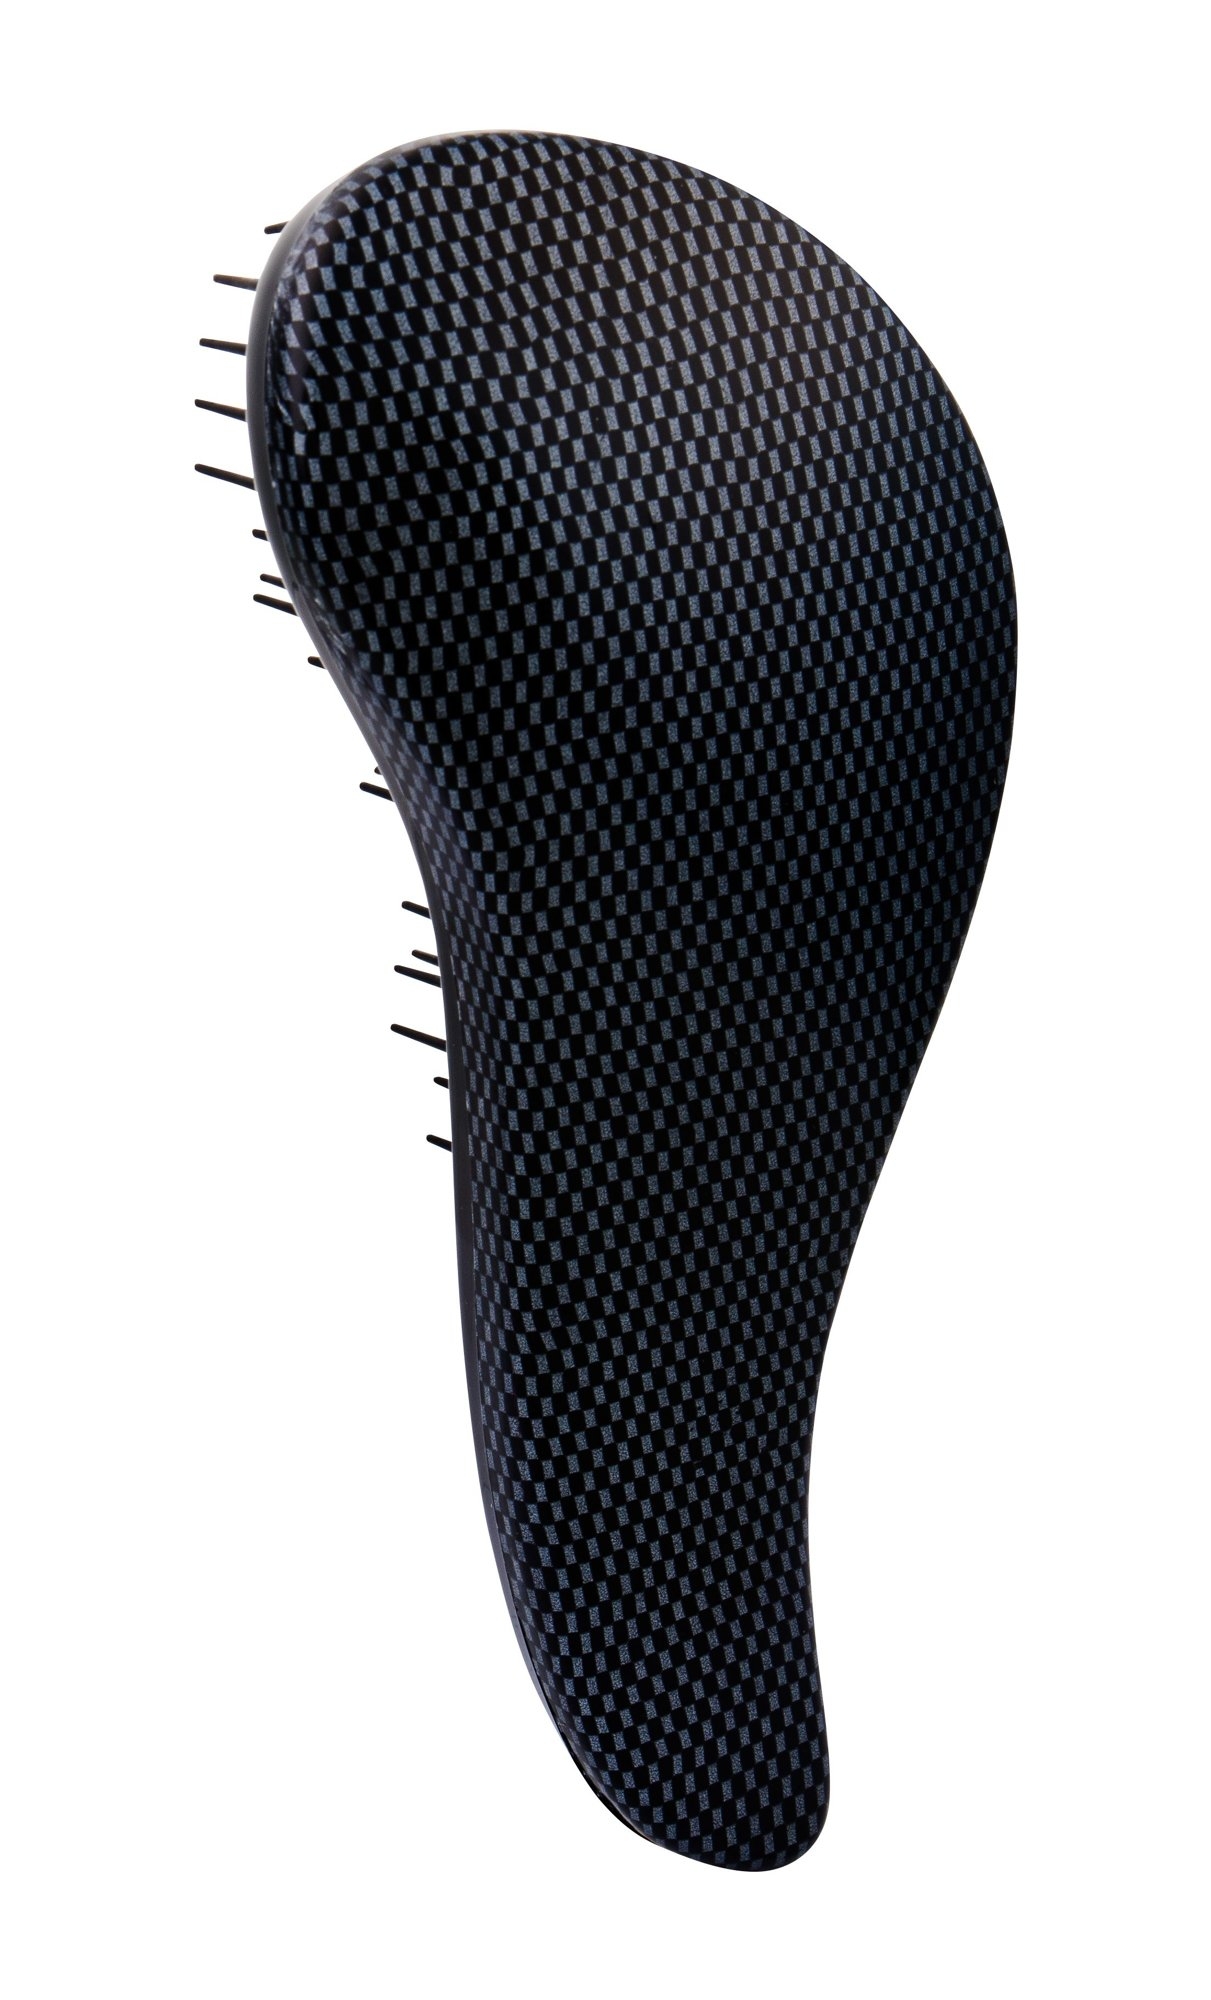 Detangler Detangling Hairbrush 1ml Black Point